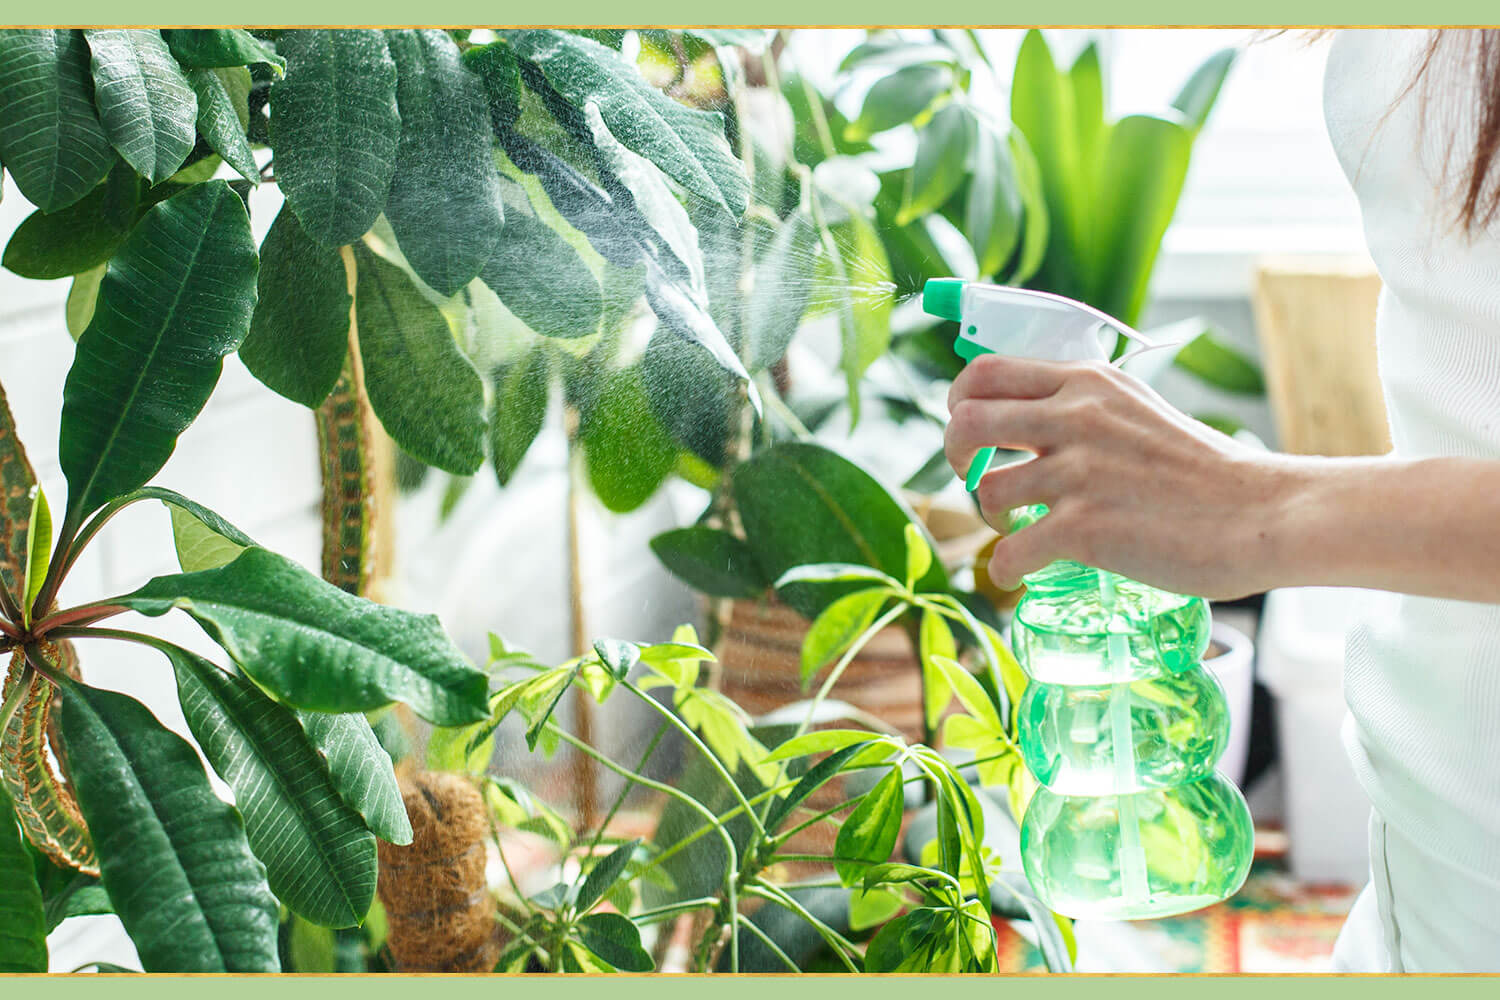 spraying green plants with water